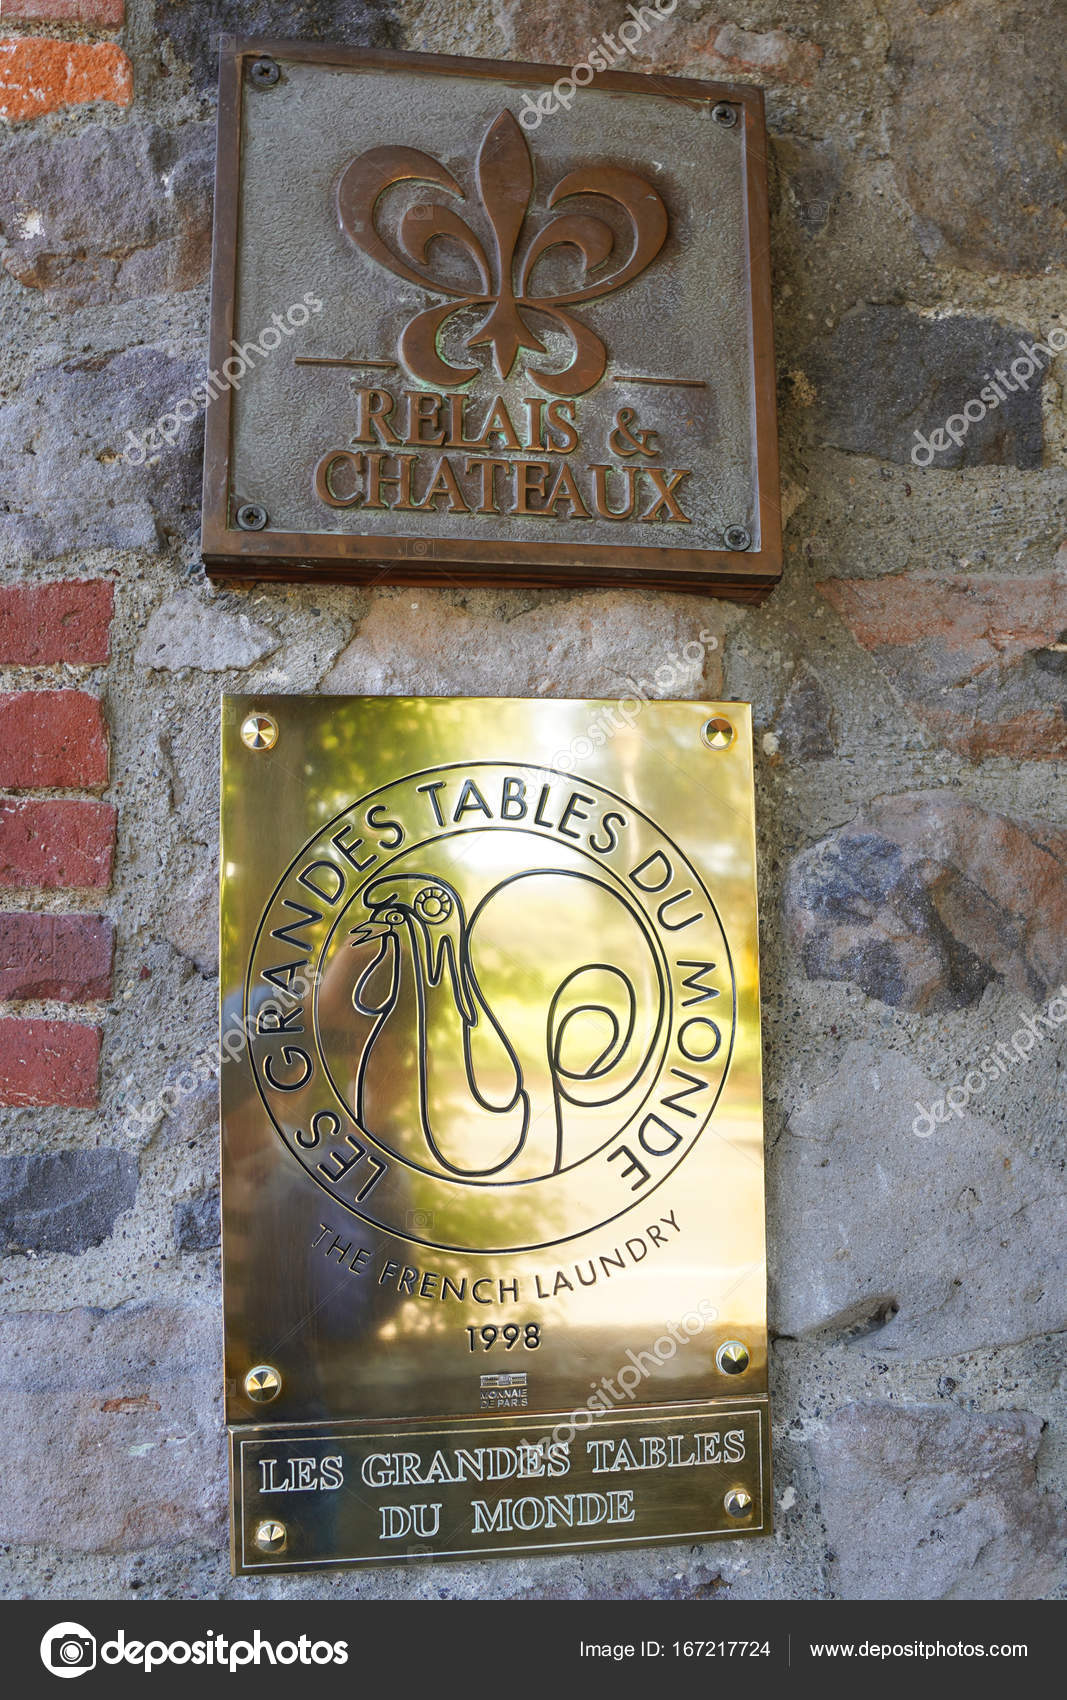 Relais & Chateaux and Les Grandes Tables du Monde signs in Three ...